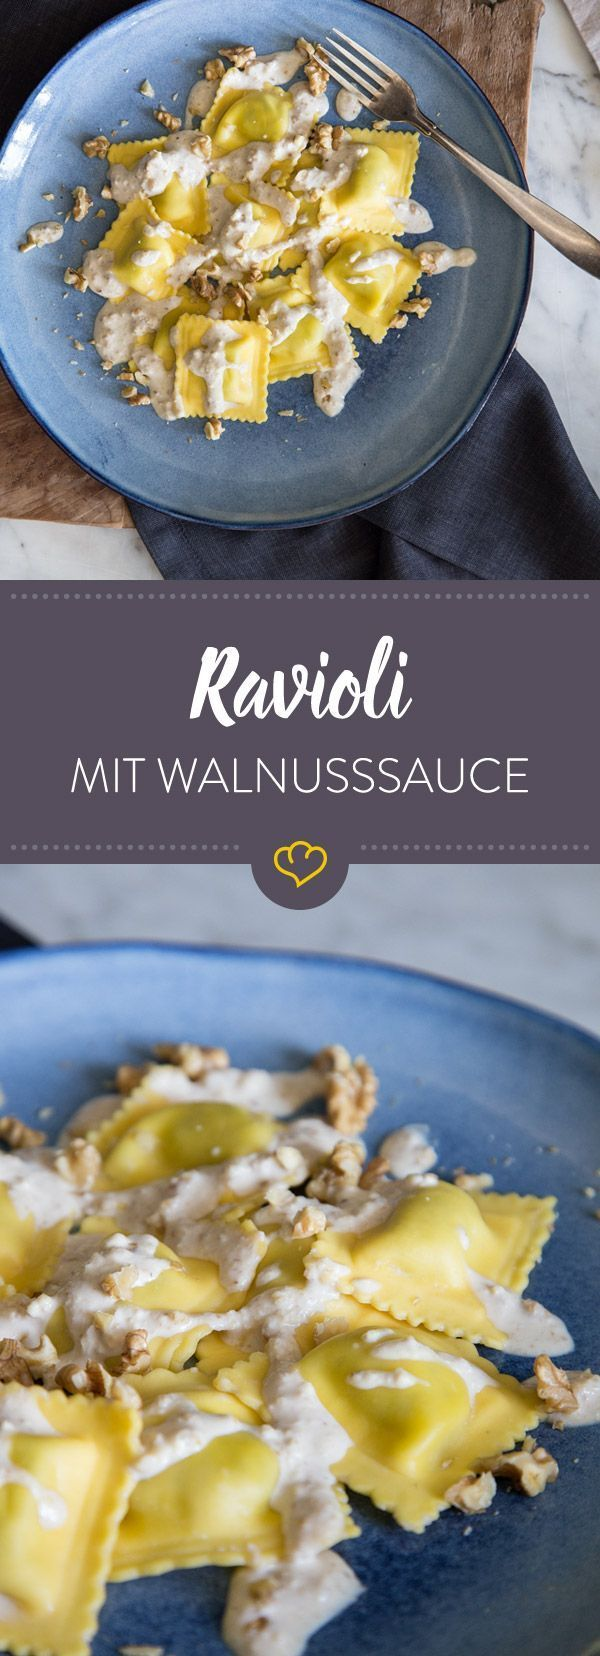 Ravioli with Ligurian walnut sauce  The walnut sauce comes from the Italian region of Liguria and is just as popular as the pesto and t